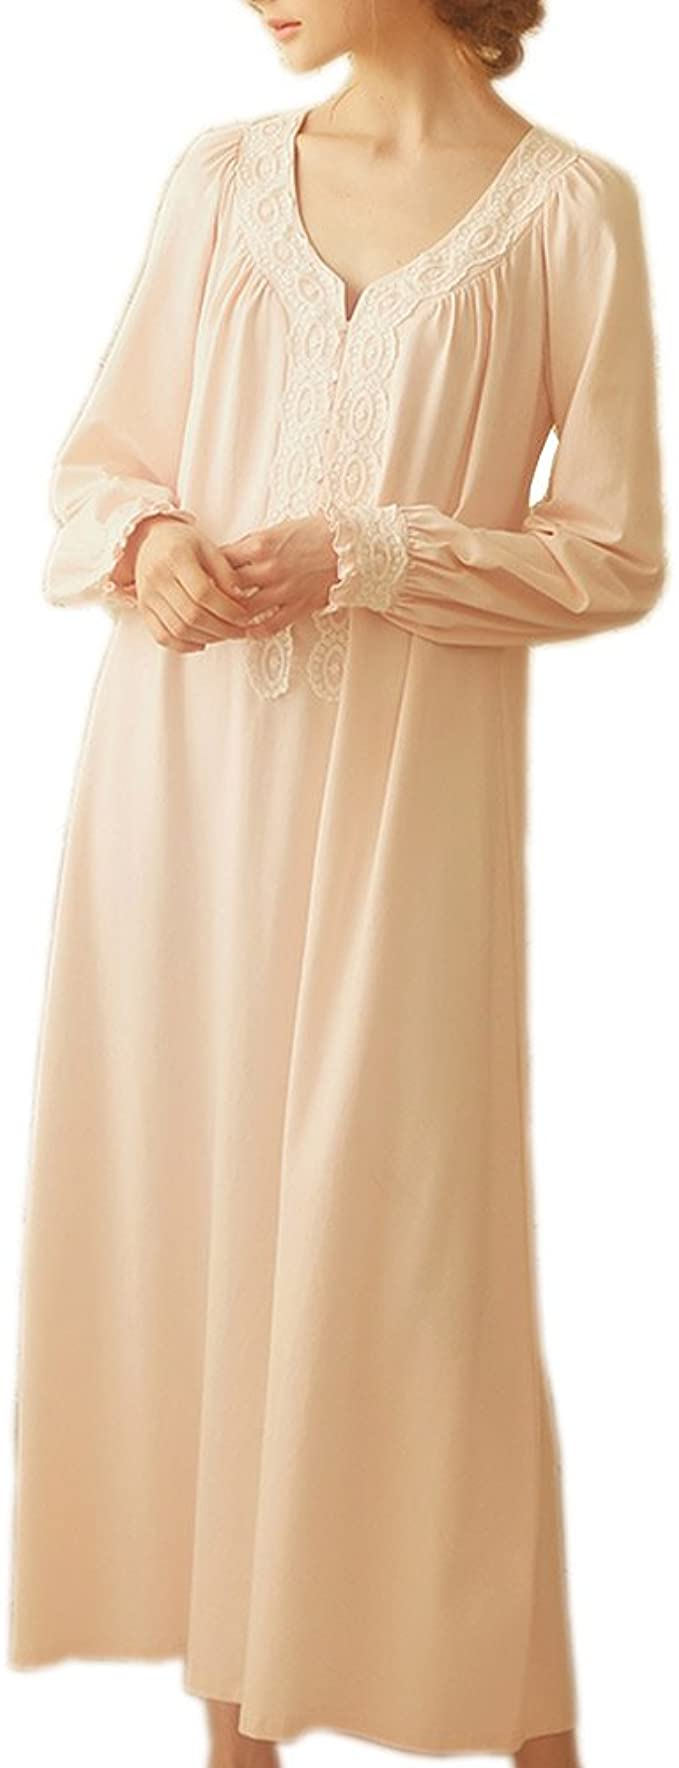 Vintage Nightgowns, Pajamas, Baby Dolls, Robes Women Victorian Nightgown Vintage Cotton Sleepwear Long Nightrobe Pajamas Loungewear $34.99 AT vintagedancer.com